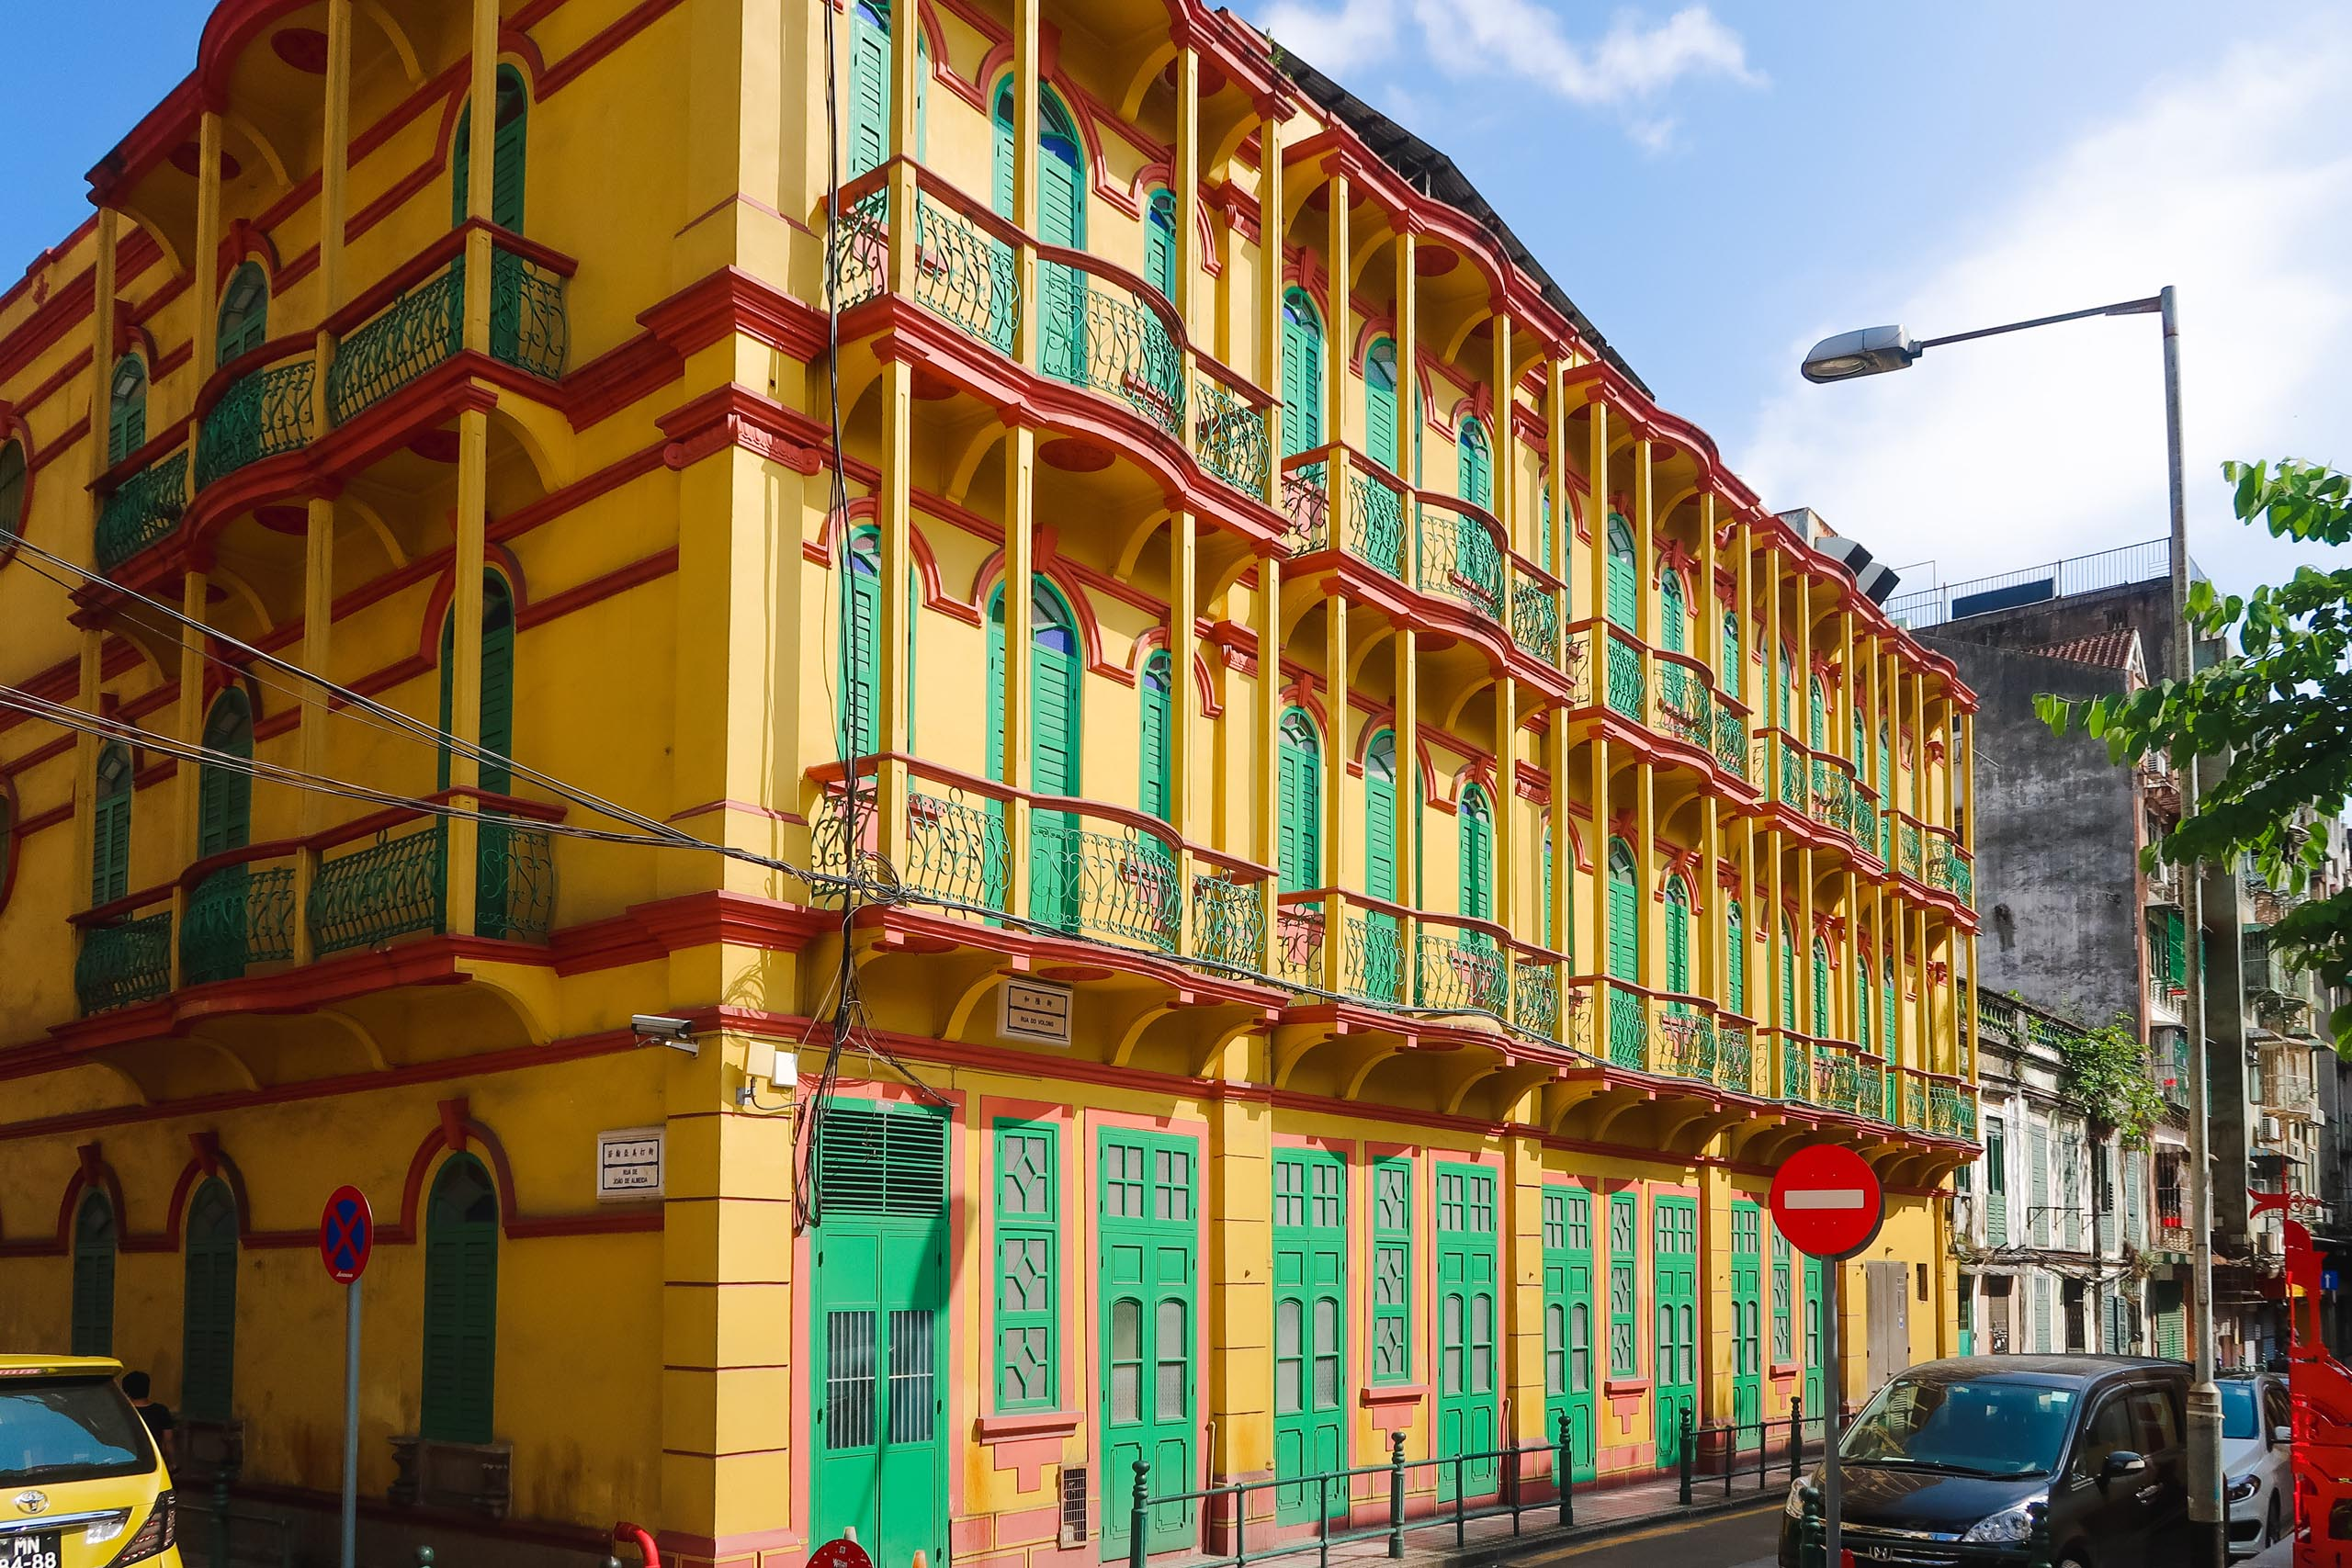 instagrammable buildings in macau